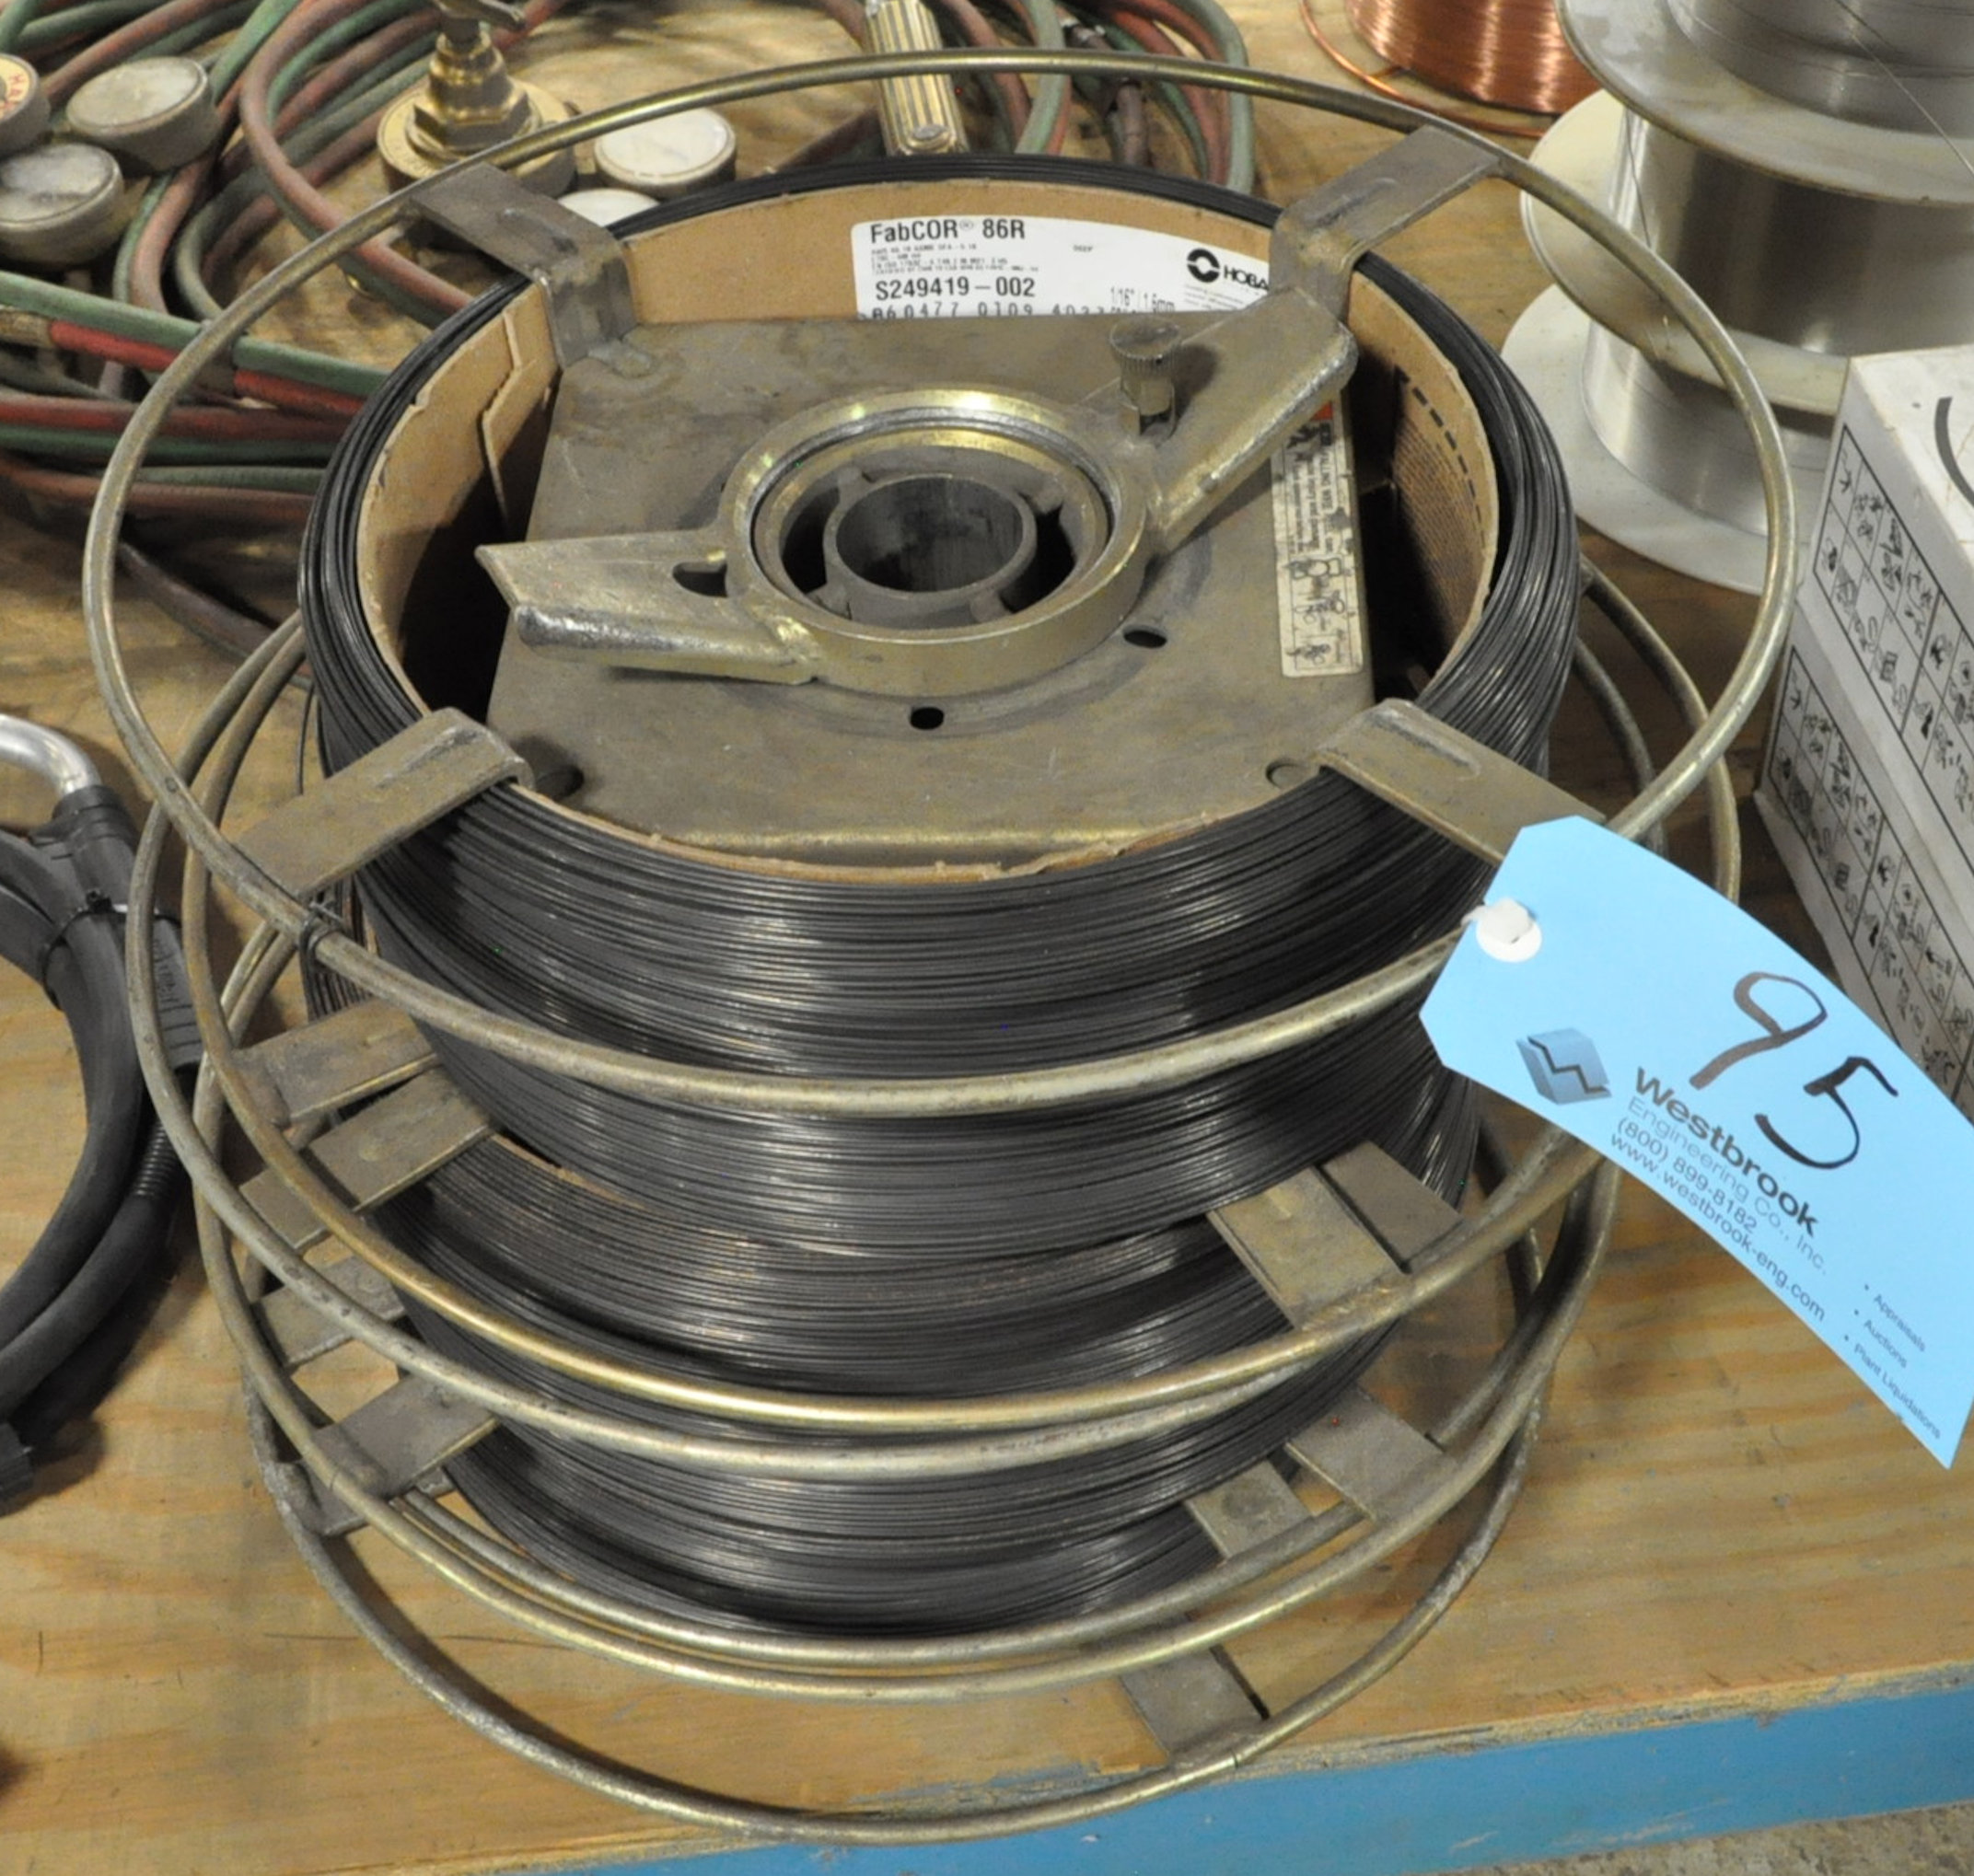 "Lot-(3) HOBART FABCOR 86R, 1/16"" Welding Wire Spools in (1) Stack"